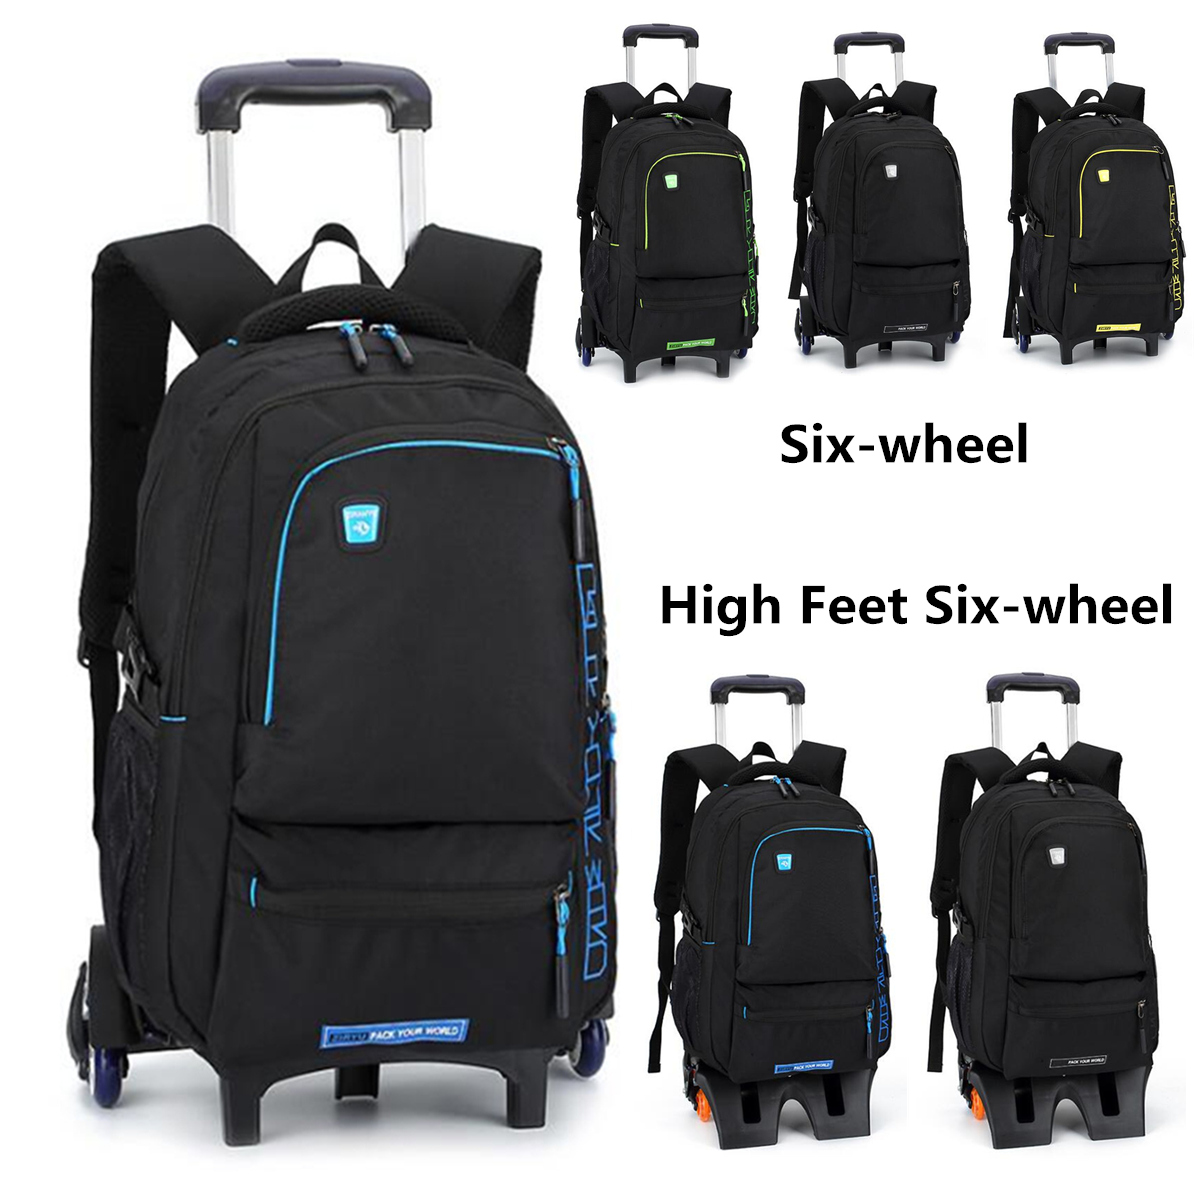 27L High Feet Detachable Trolley Backpack Student School Bags Luggage Men Kids Boys